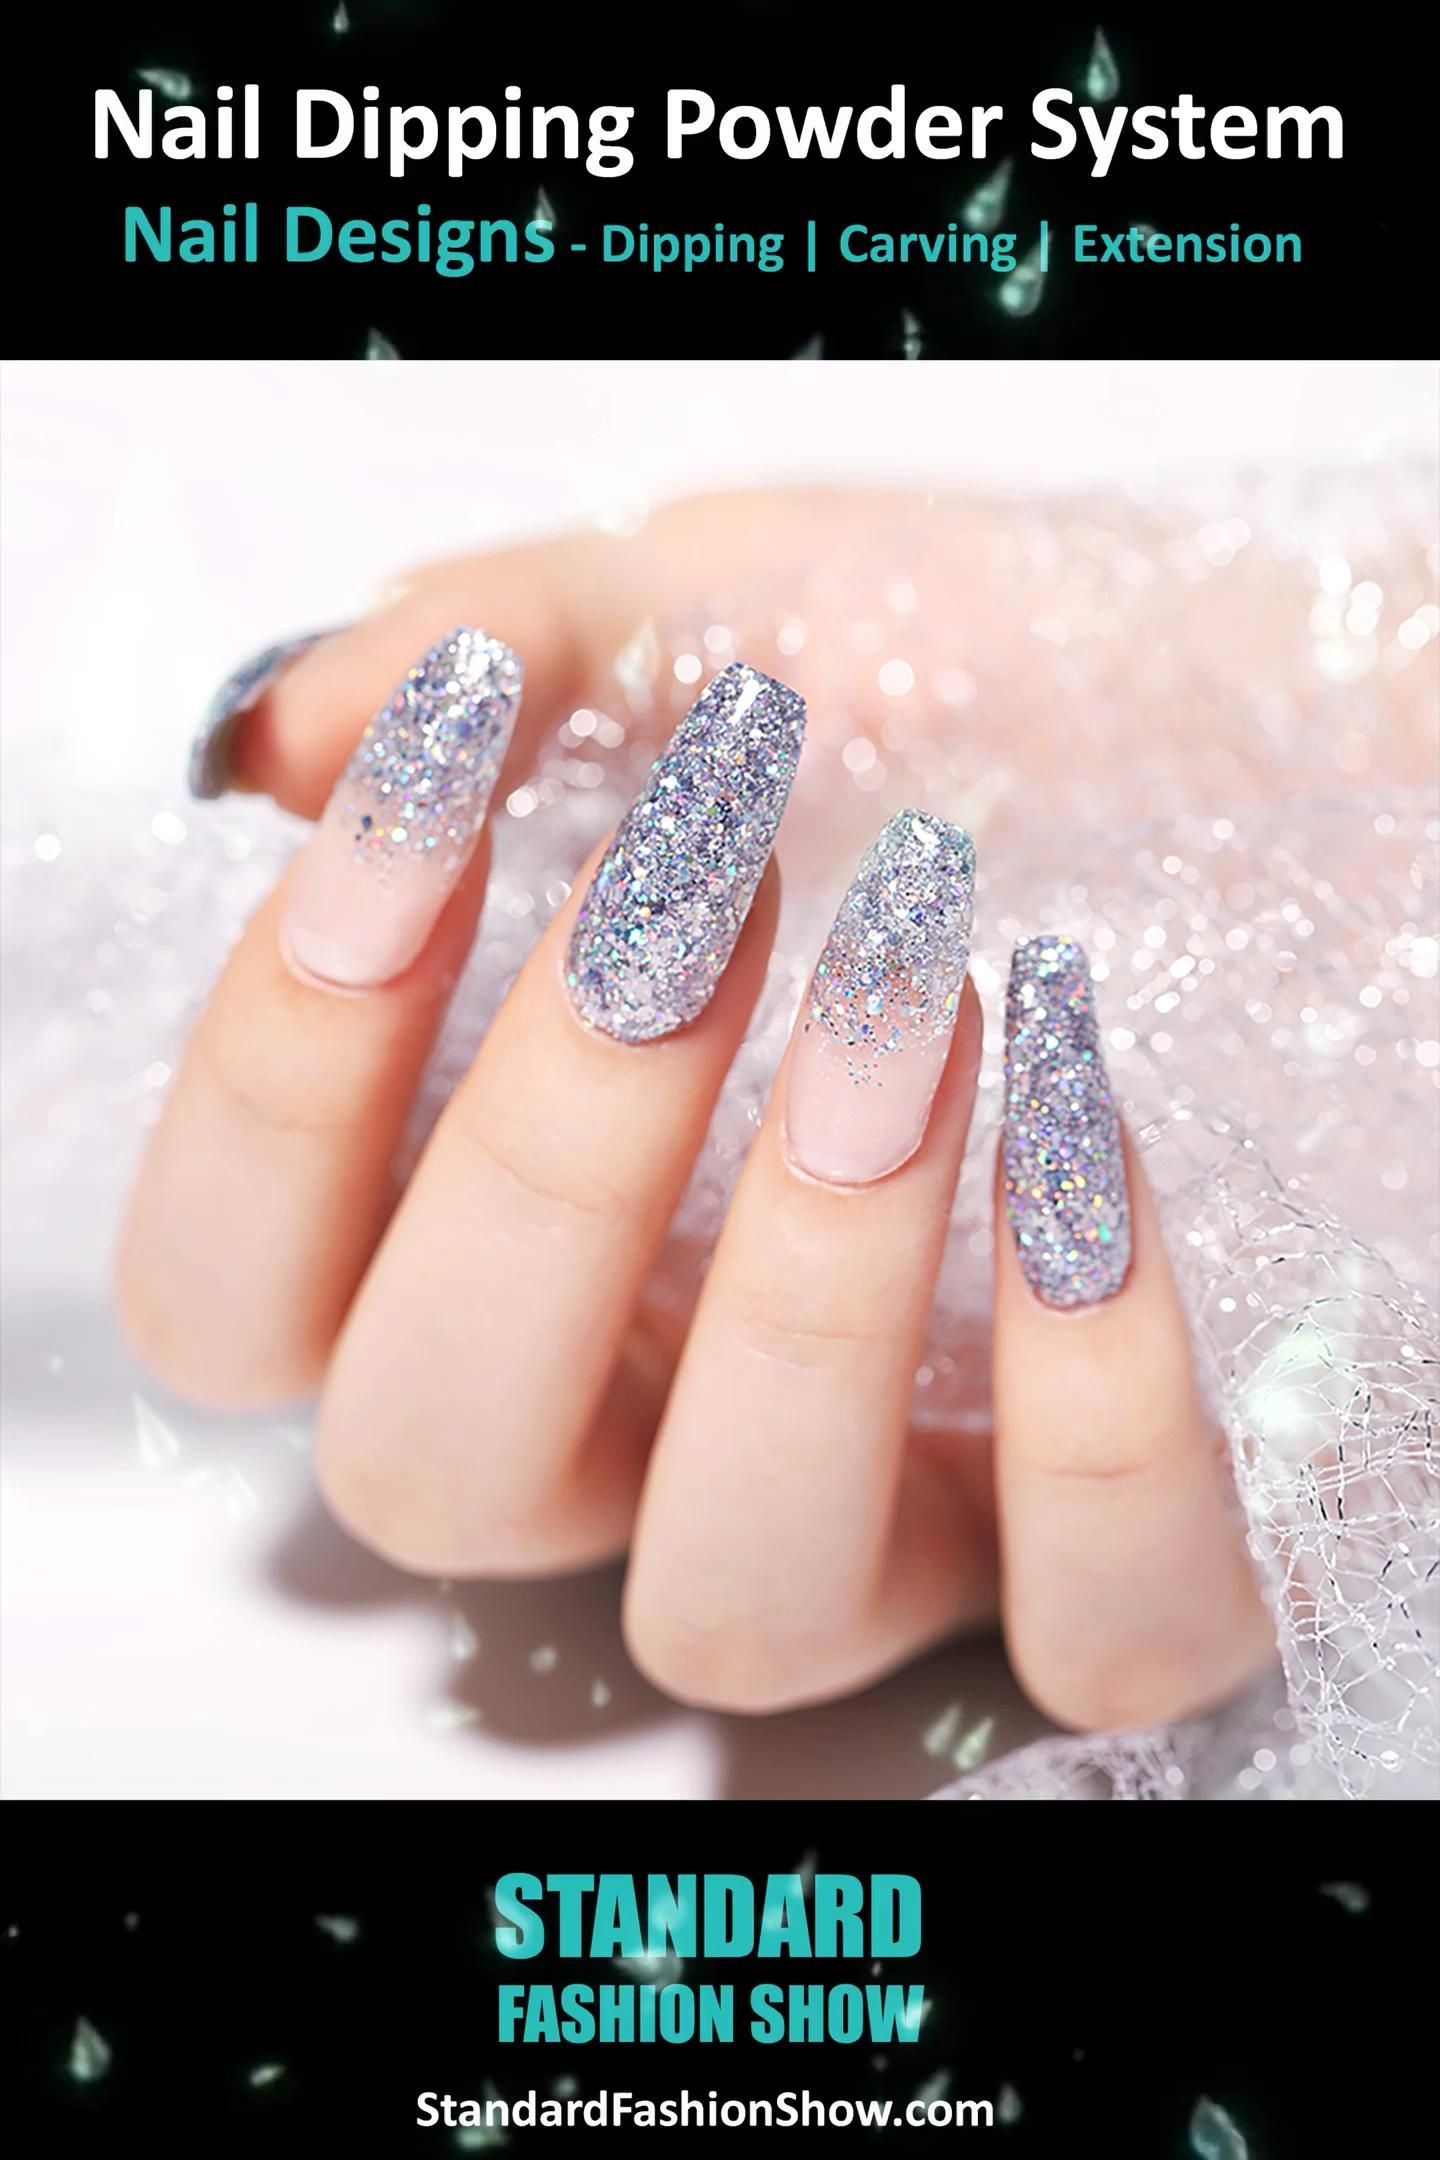 Nail Dipping Powder System - Nail Designs